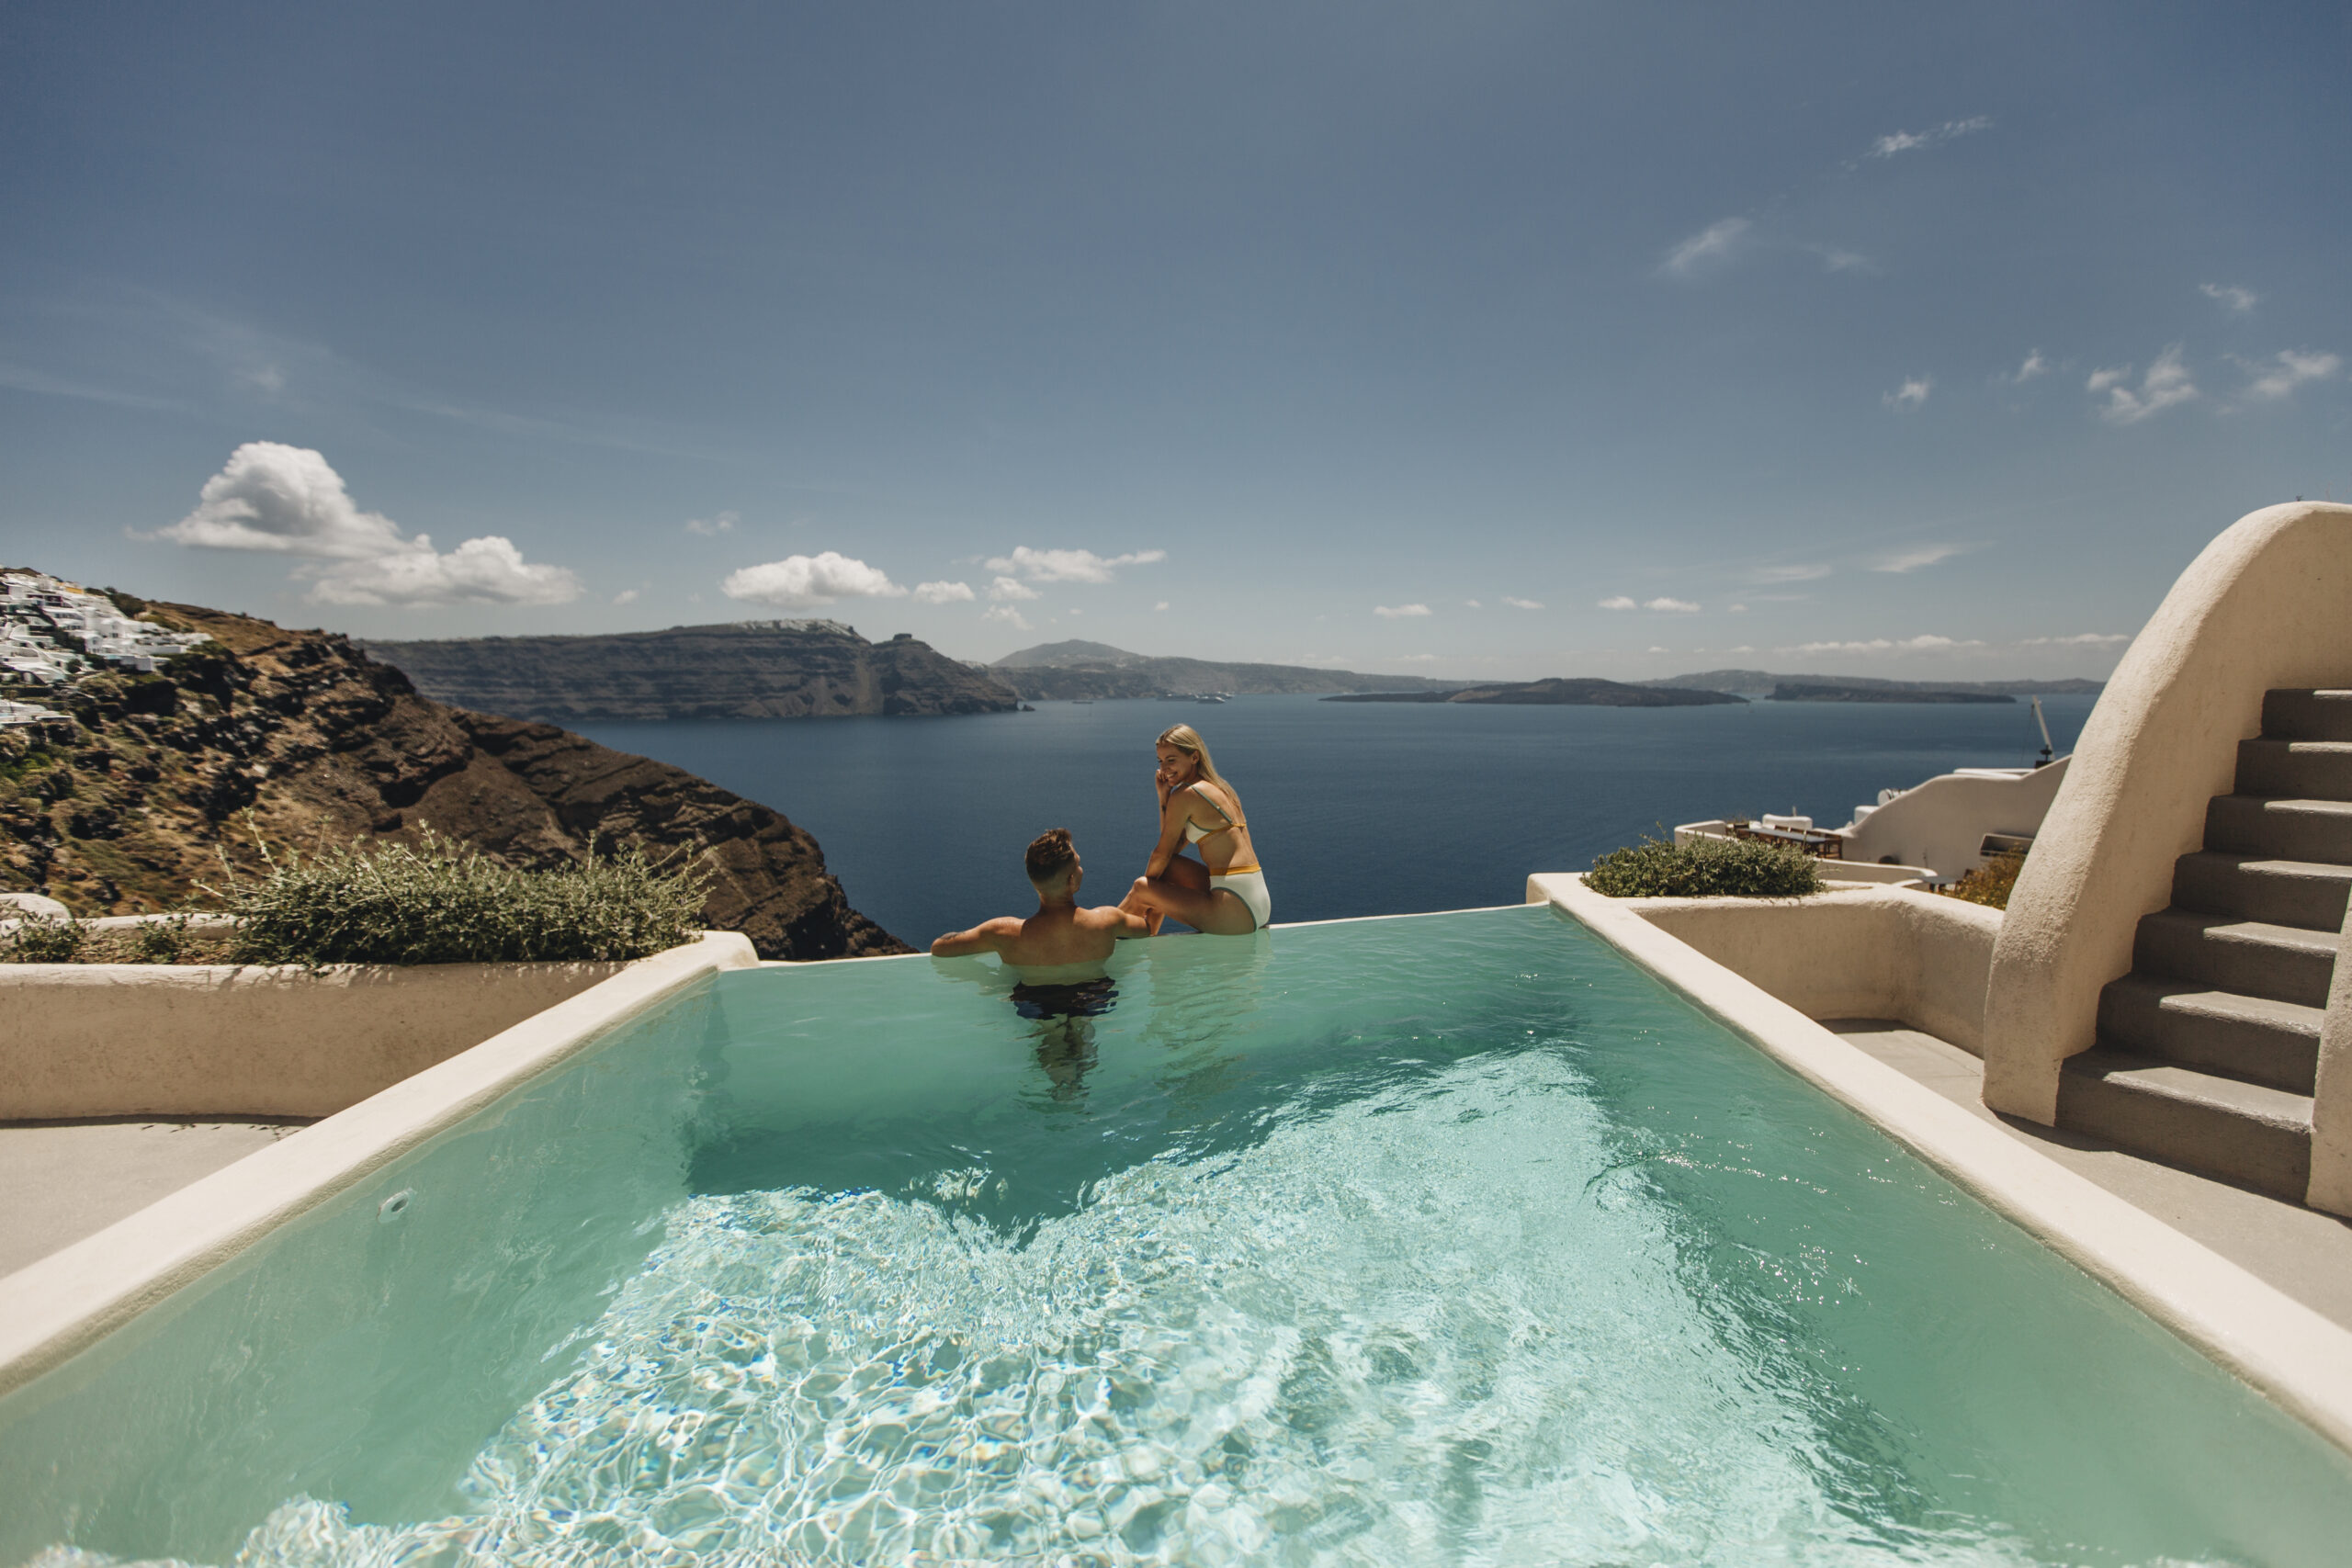 Couple in the Hollistic Villa private infinity pool enjoying the breathtaking view